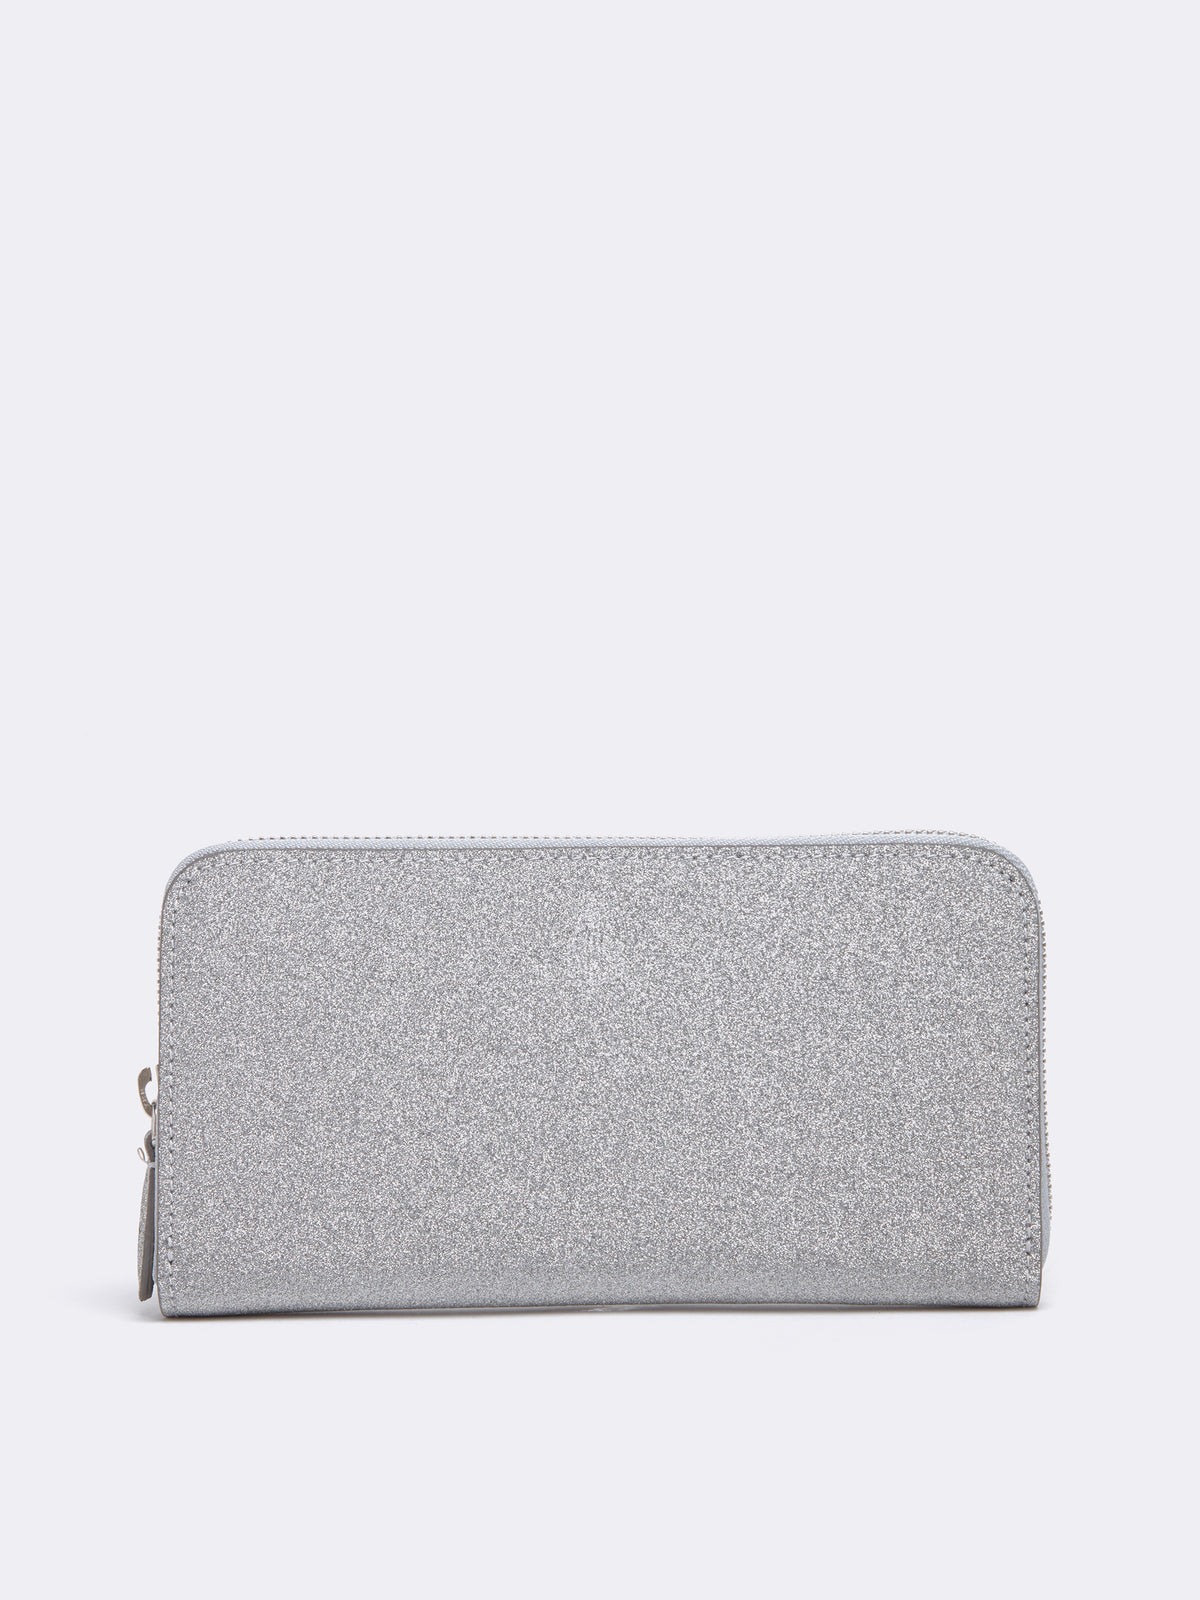 Mark Cross Leather Zip Wallet Luminous Glitter Silver Front